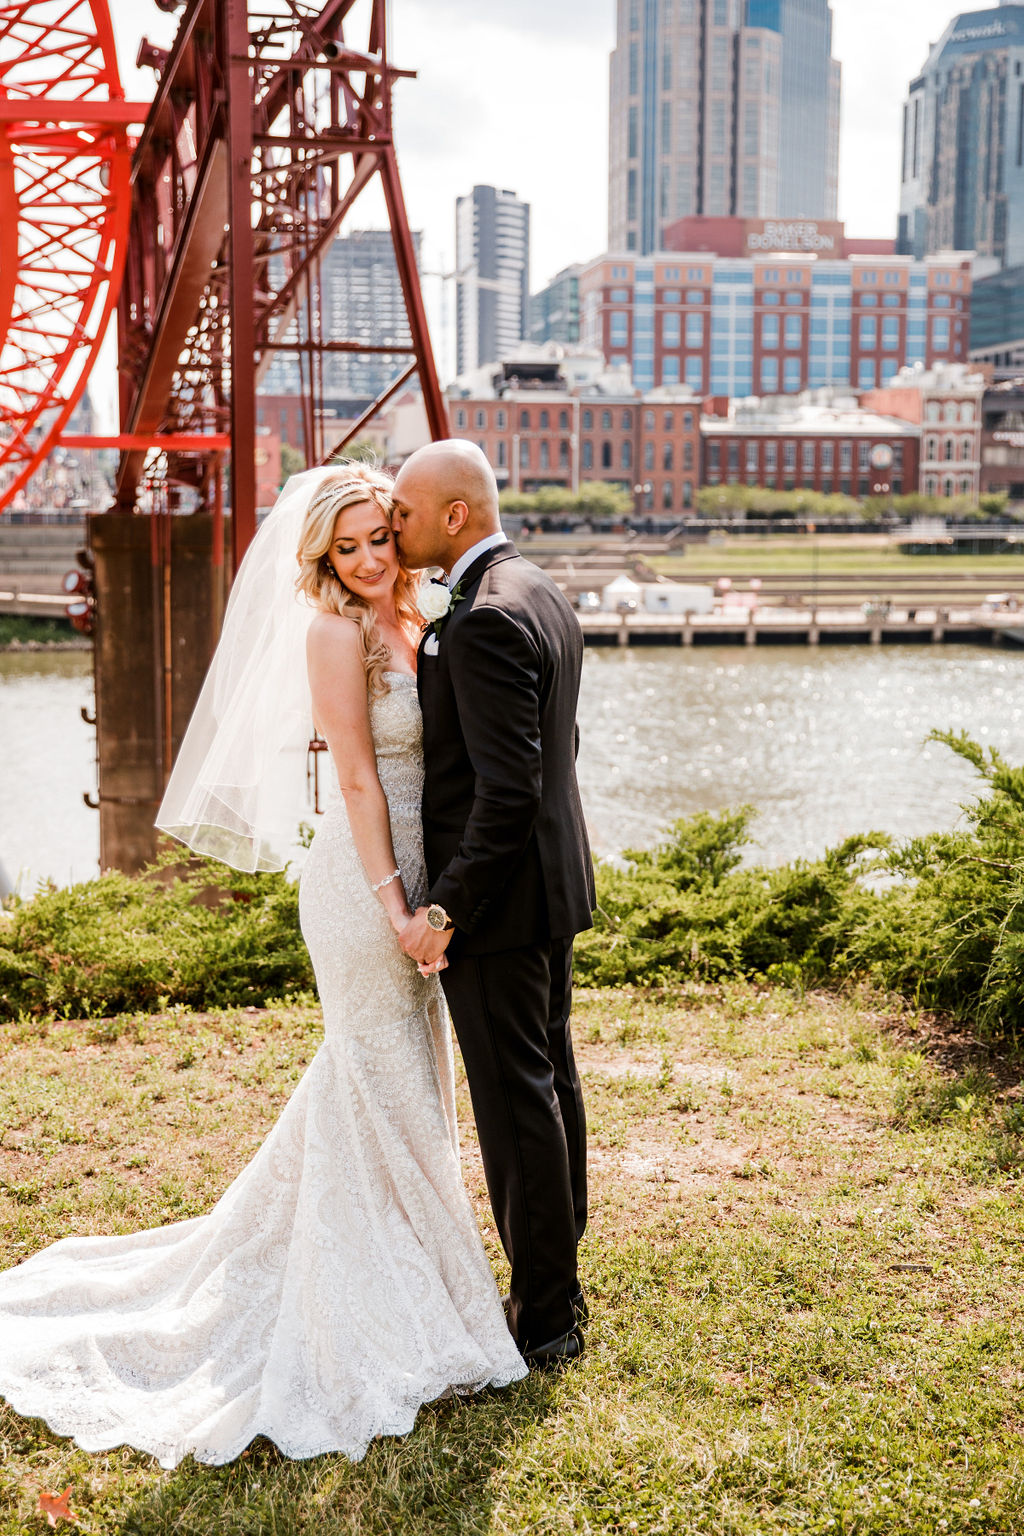 Nashville Wedding First Look: Bollywood Meets Traditional Wedding at The Bridge Building